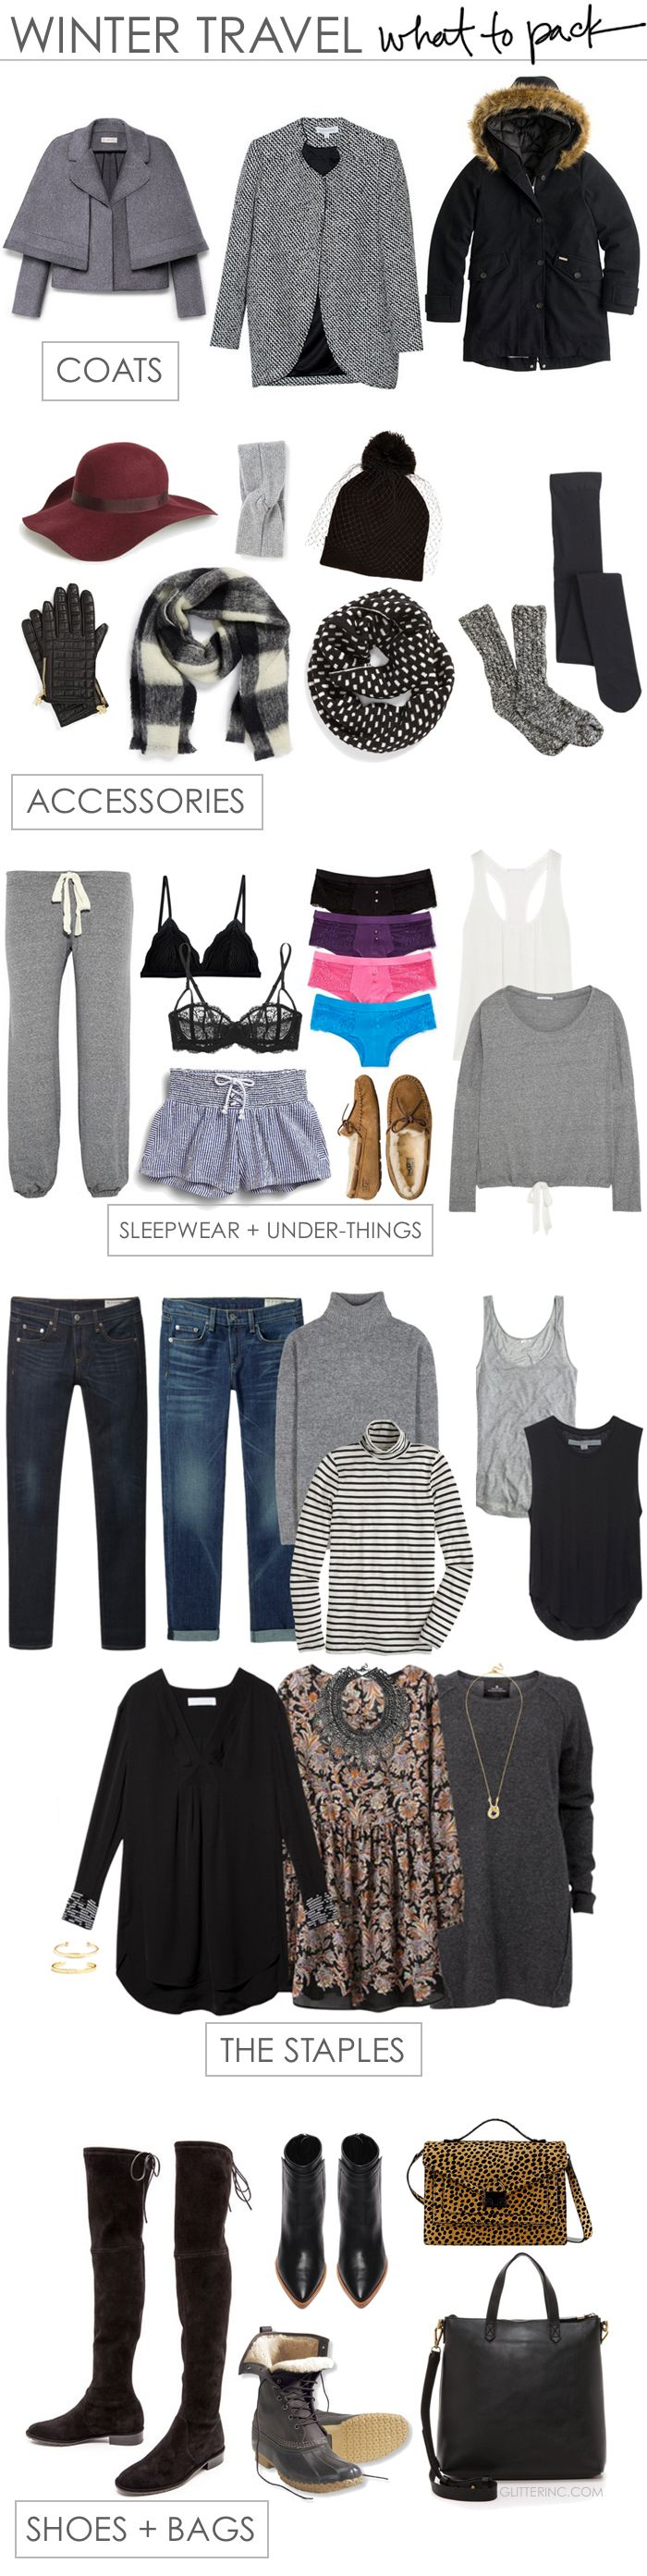 Winter Travel Packing List - What to Pack for a Vacation Somewhere Cold. Click through for the details. | glitterinc.com | @glitterinc